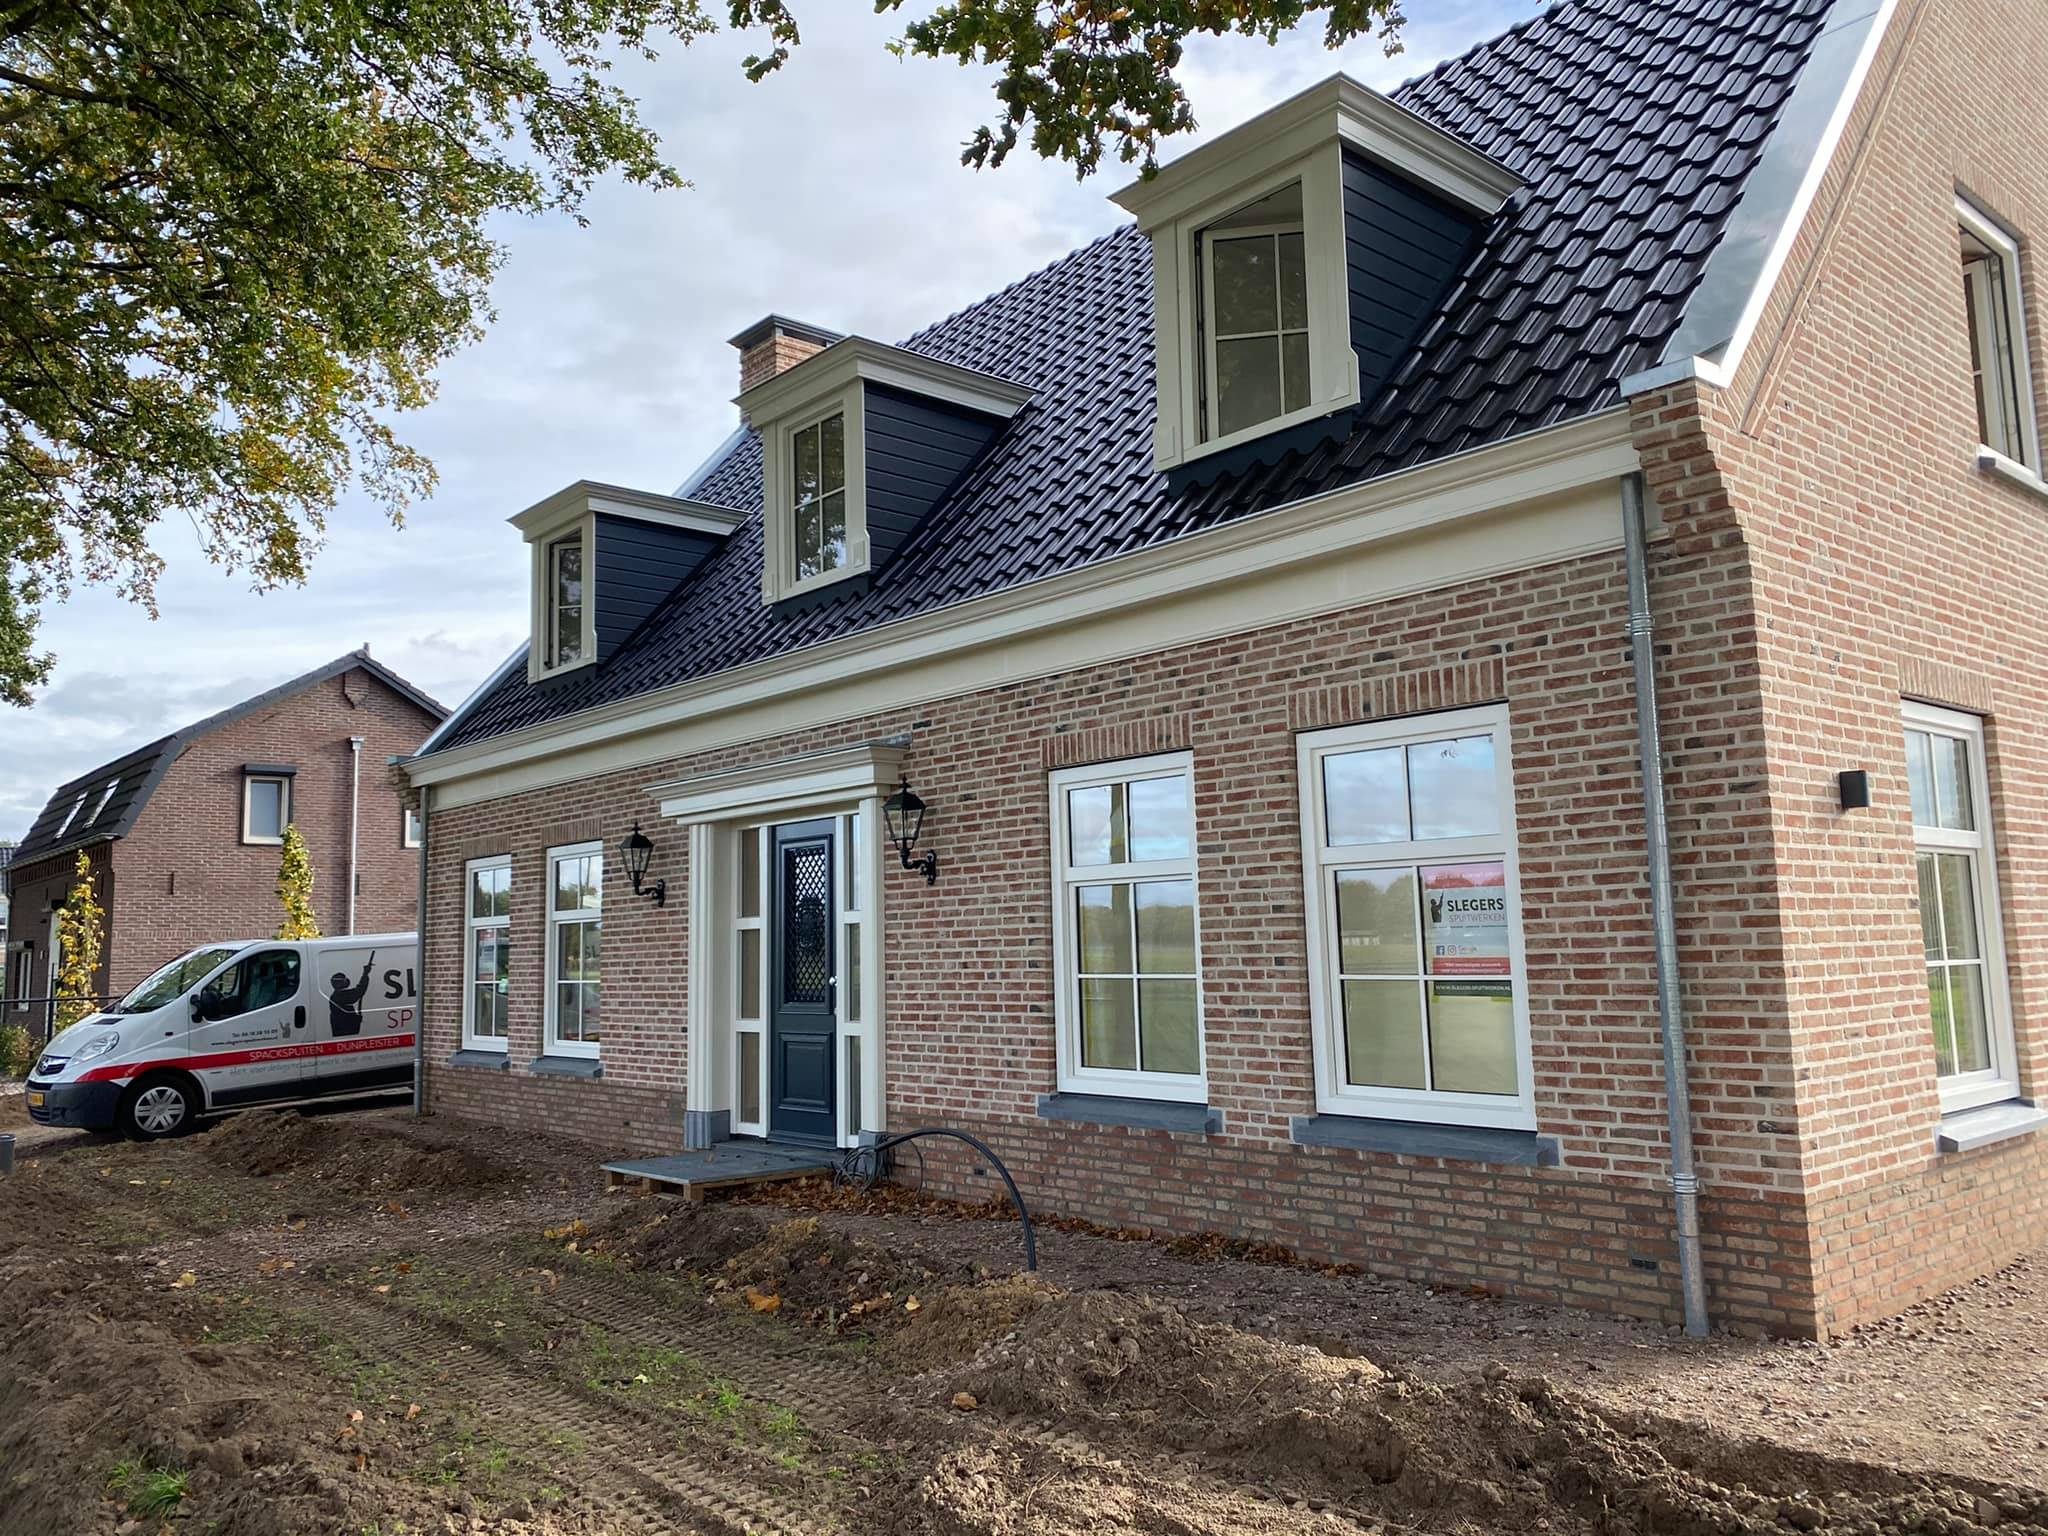 Afwerking nieuwbouwproject modelwoning in Swalmen